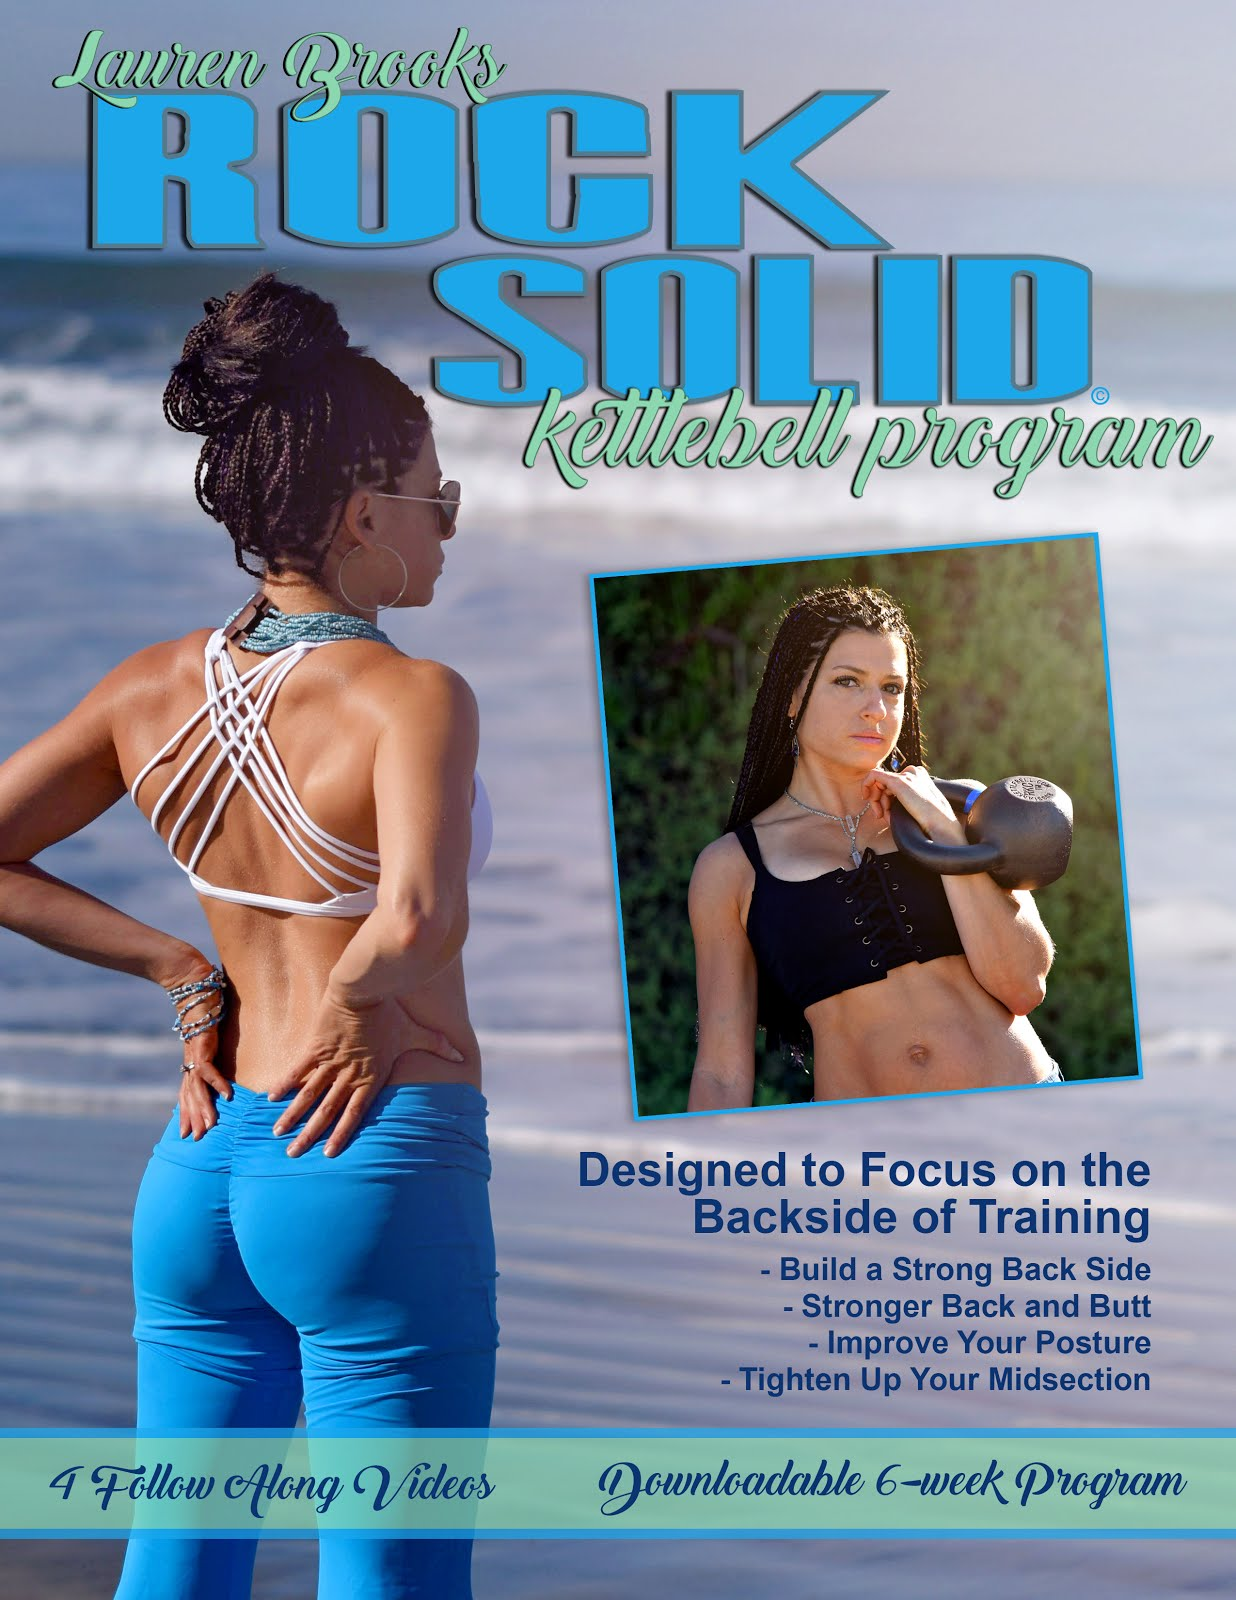 Rock Solid Kettlebell program